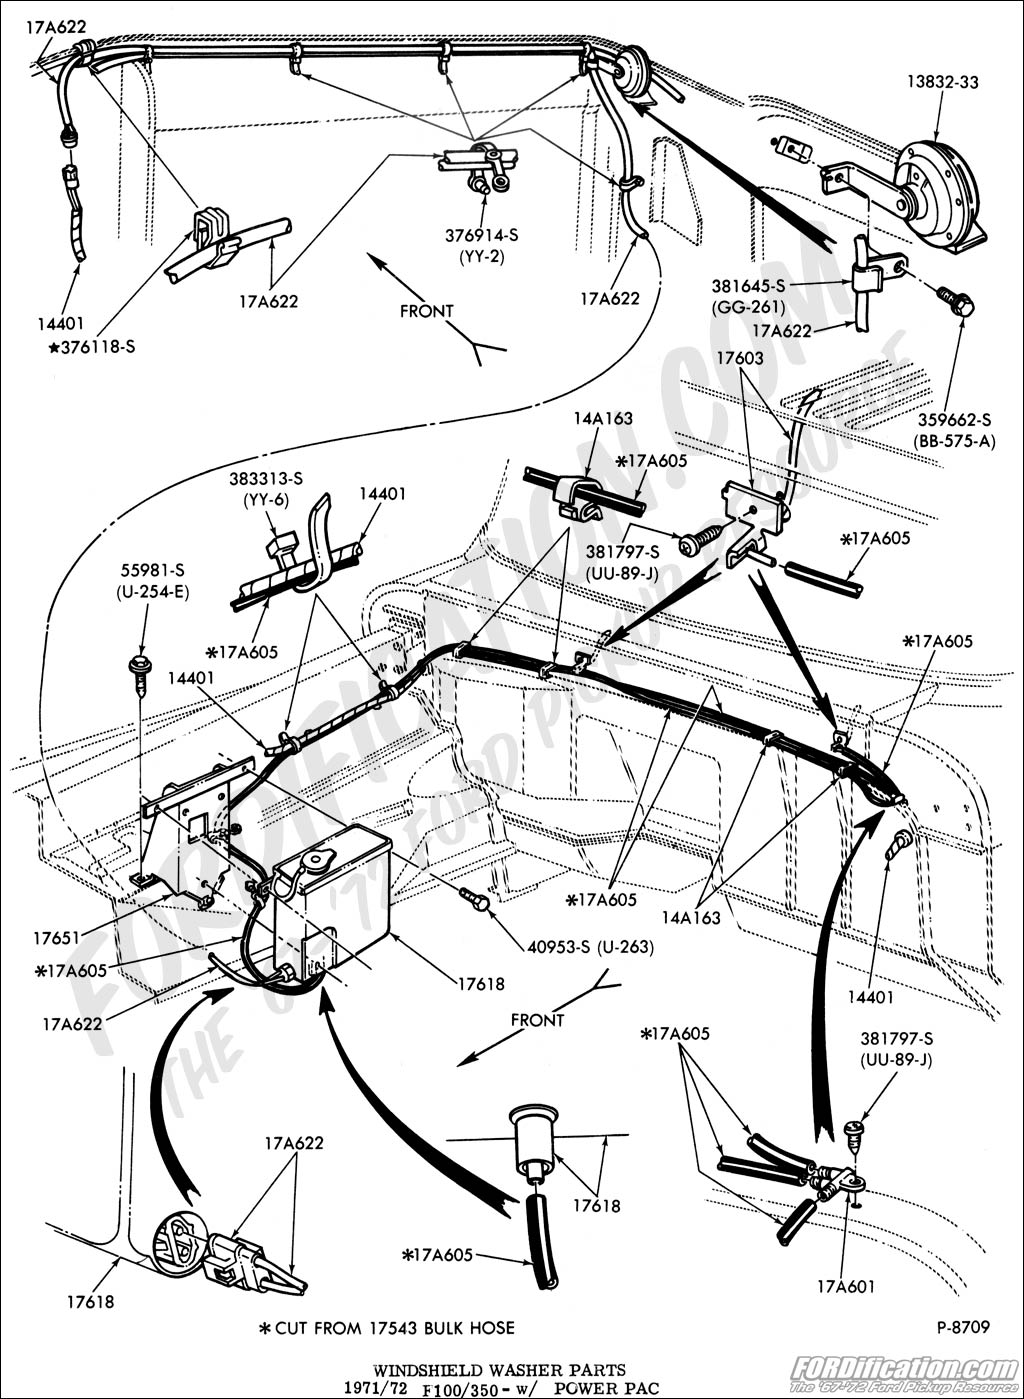 2015 Ford F 350 Wiring Diagram Library Super Duty Truck Technical Drawings And Schematics Section I Electrical